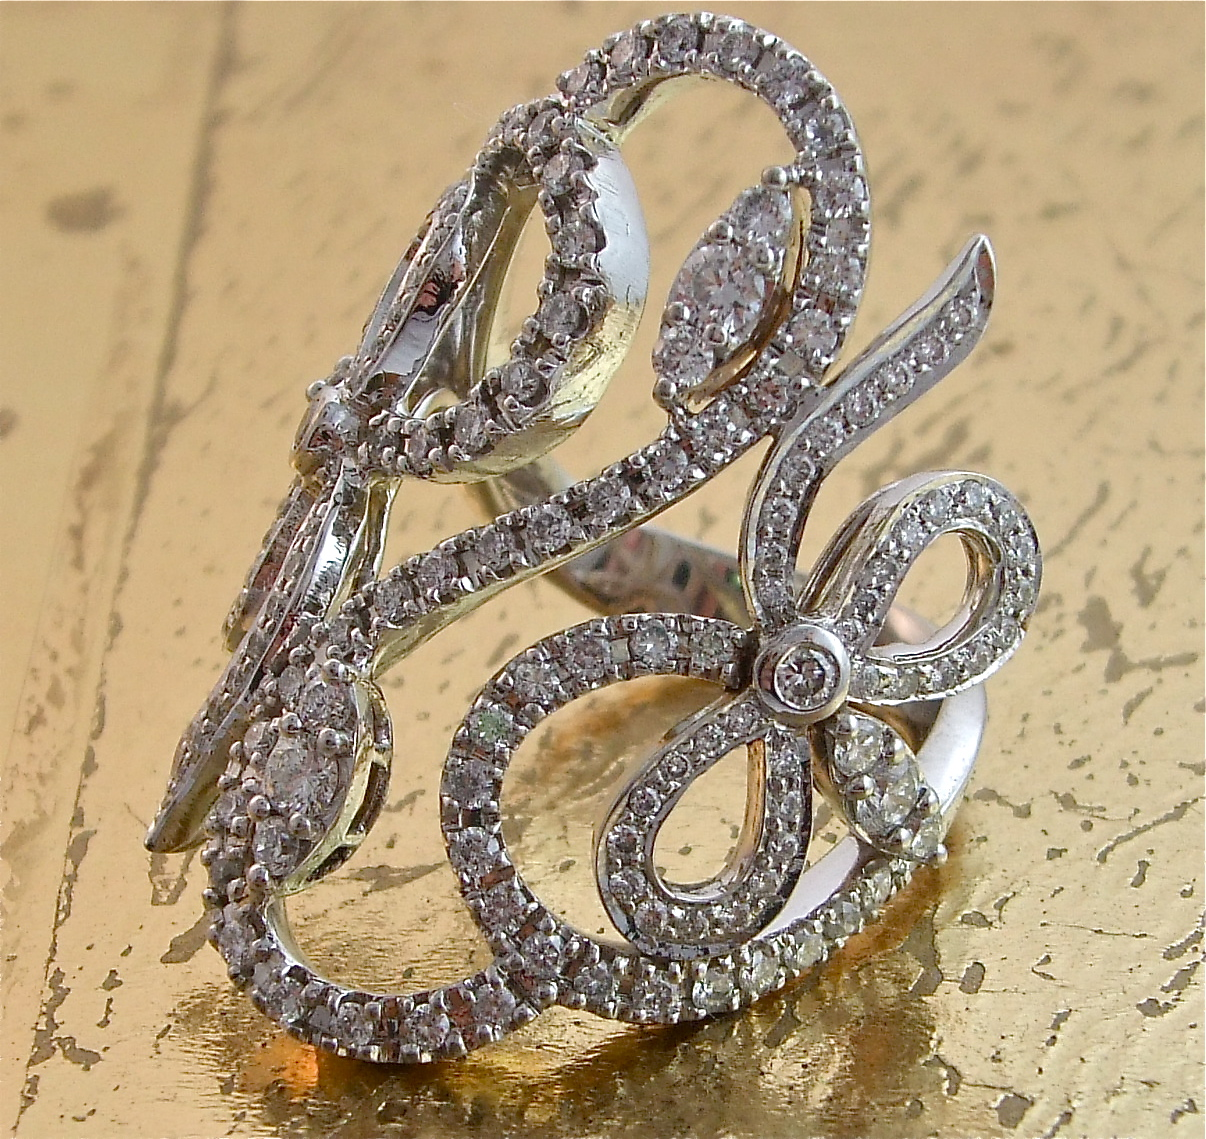 Fashionable Diamond Ring - Item No: 0013550